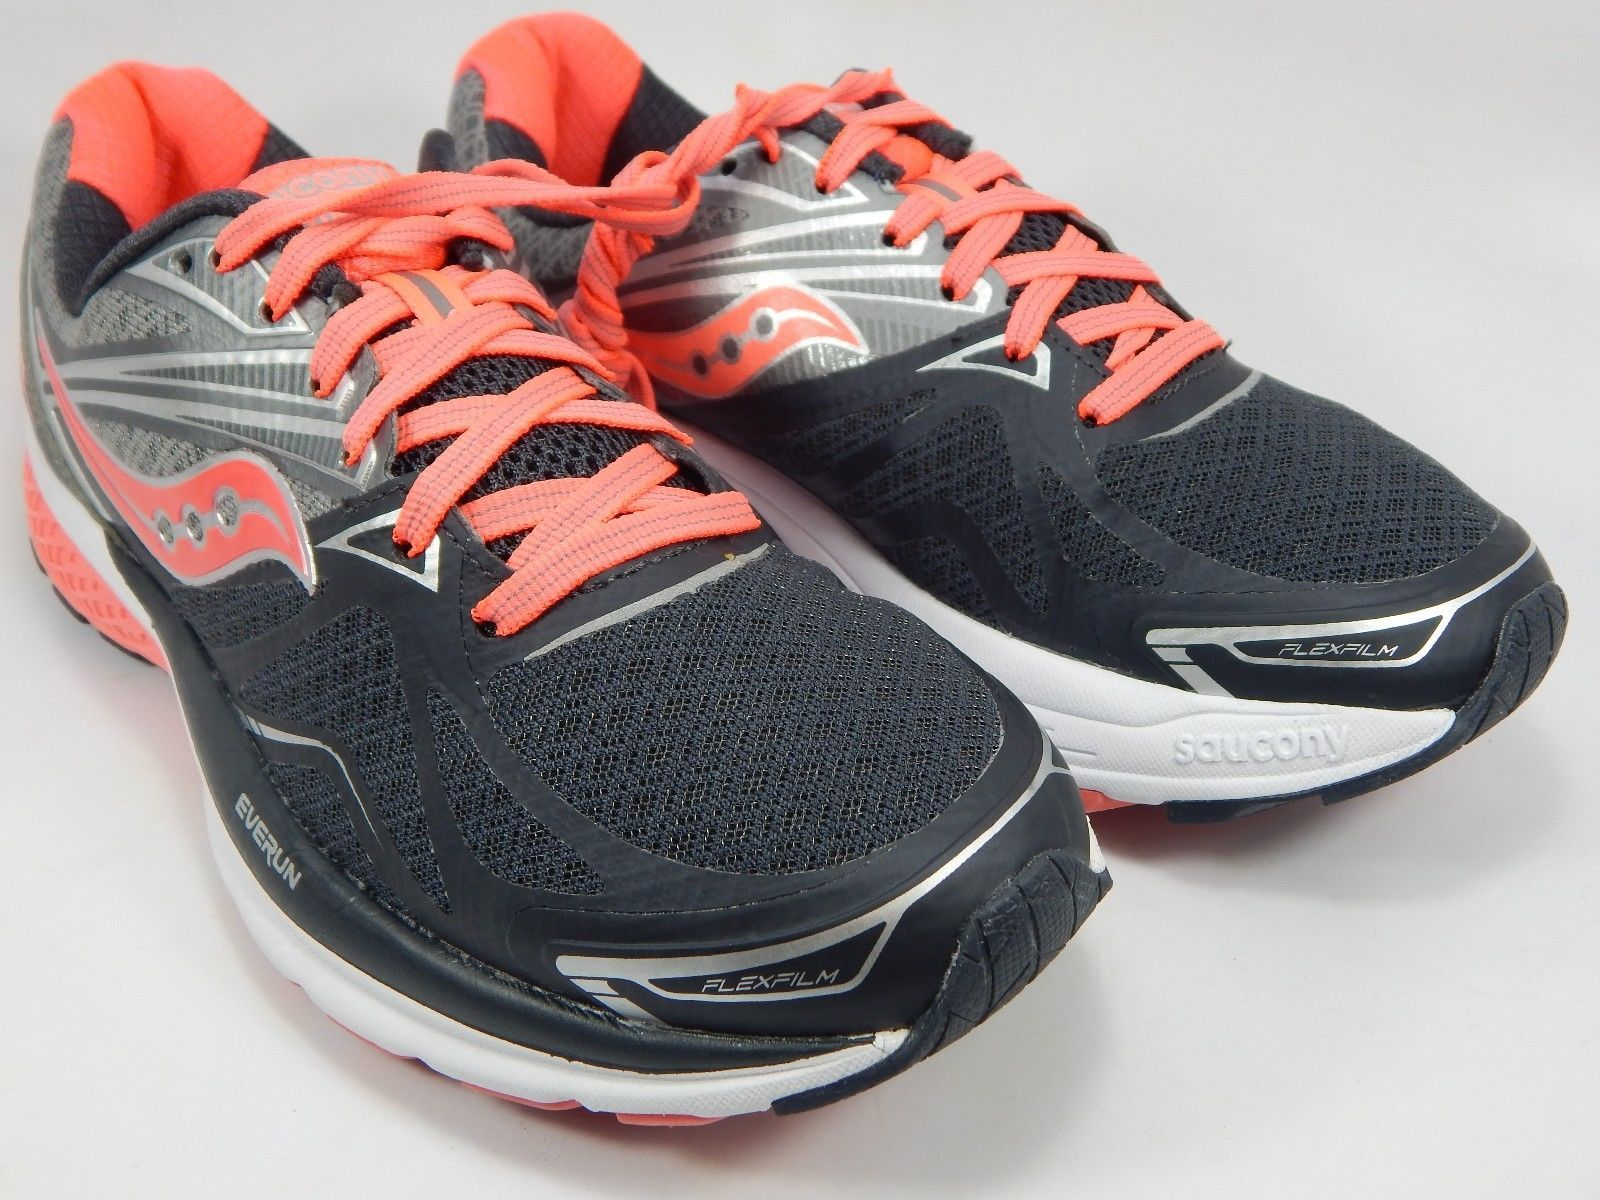 Saucony Ride 9 Women's Running Shoes Size US 8 M (B) EU 39 Gray Pink S10318-1